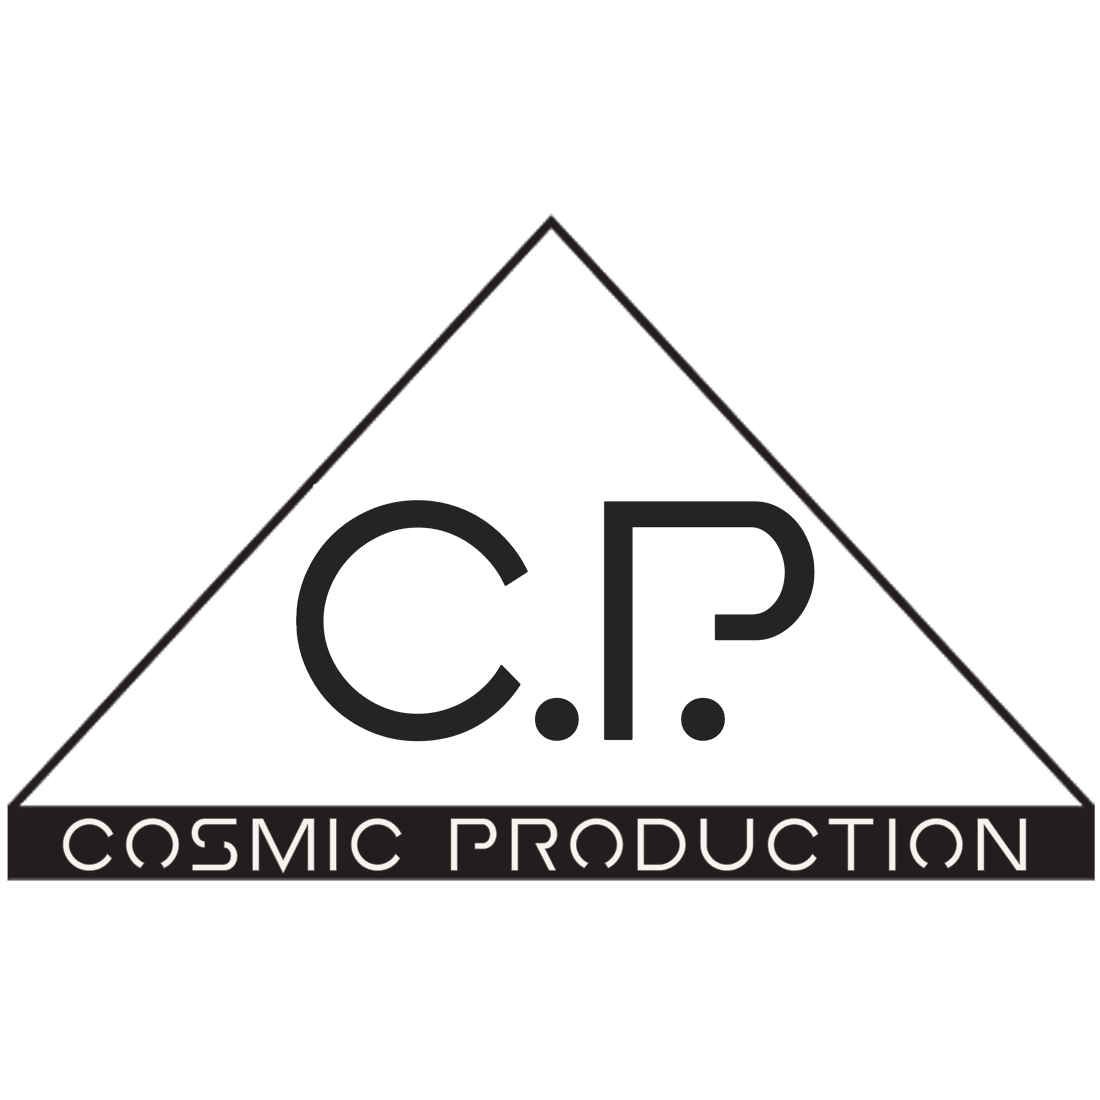 Cosmic Production